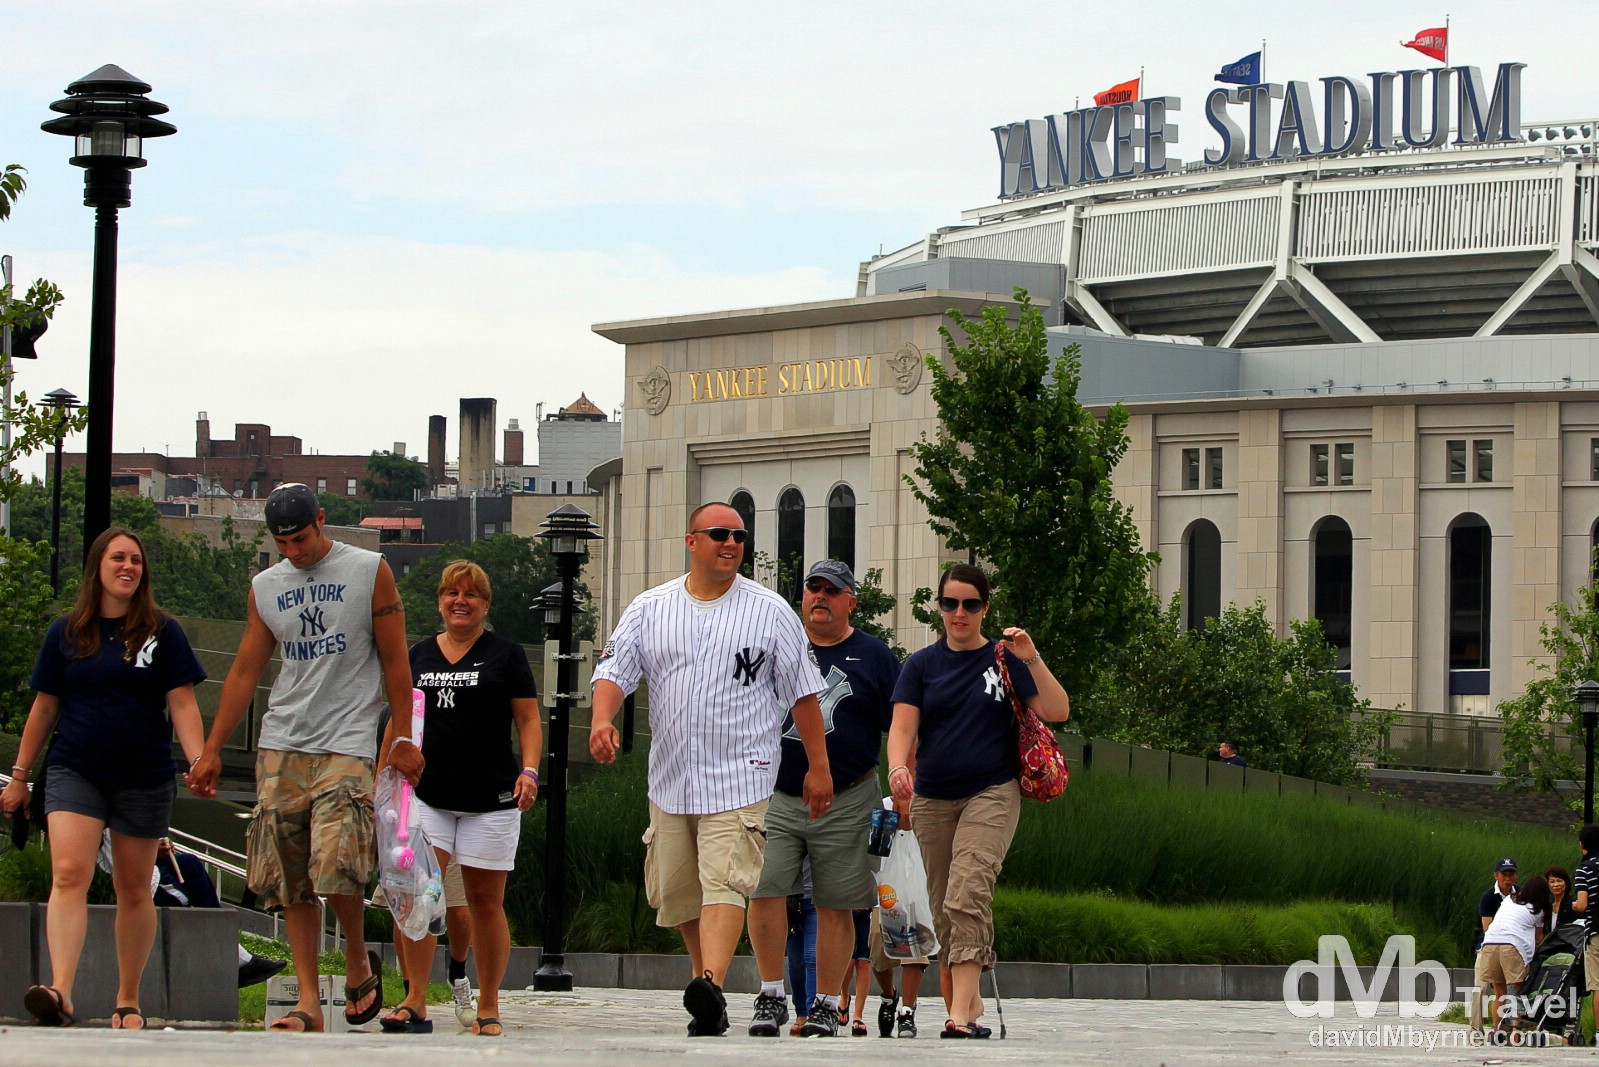 Yankee fans in Macombs Dam Park, The Bronx, New York, USA. July 13th 2013.